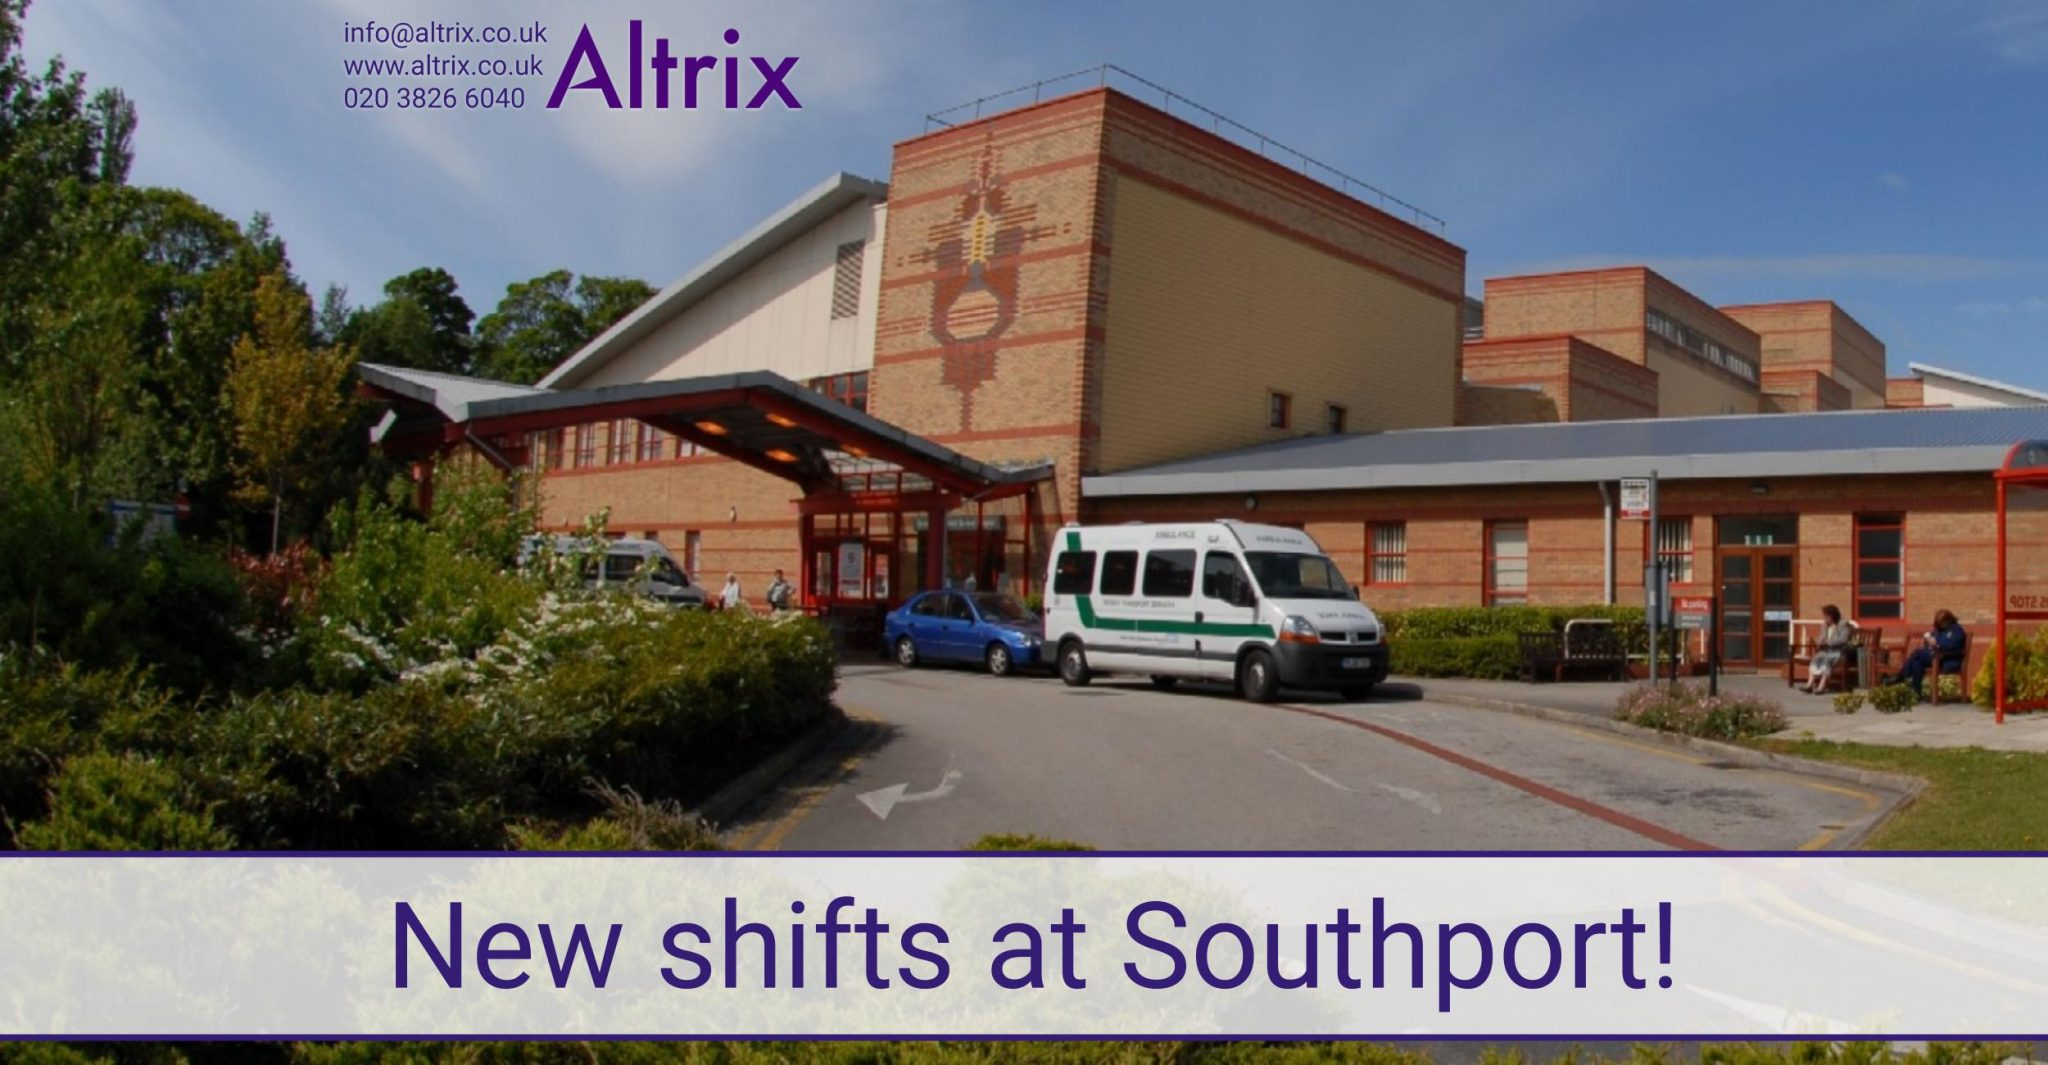 new shifts at southport